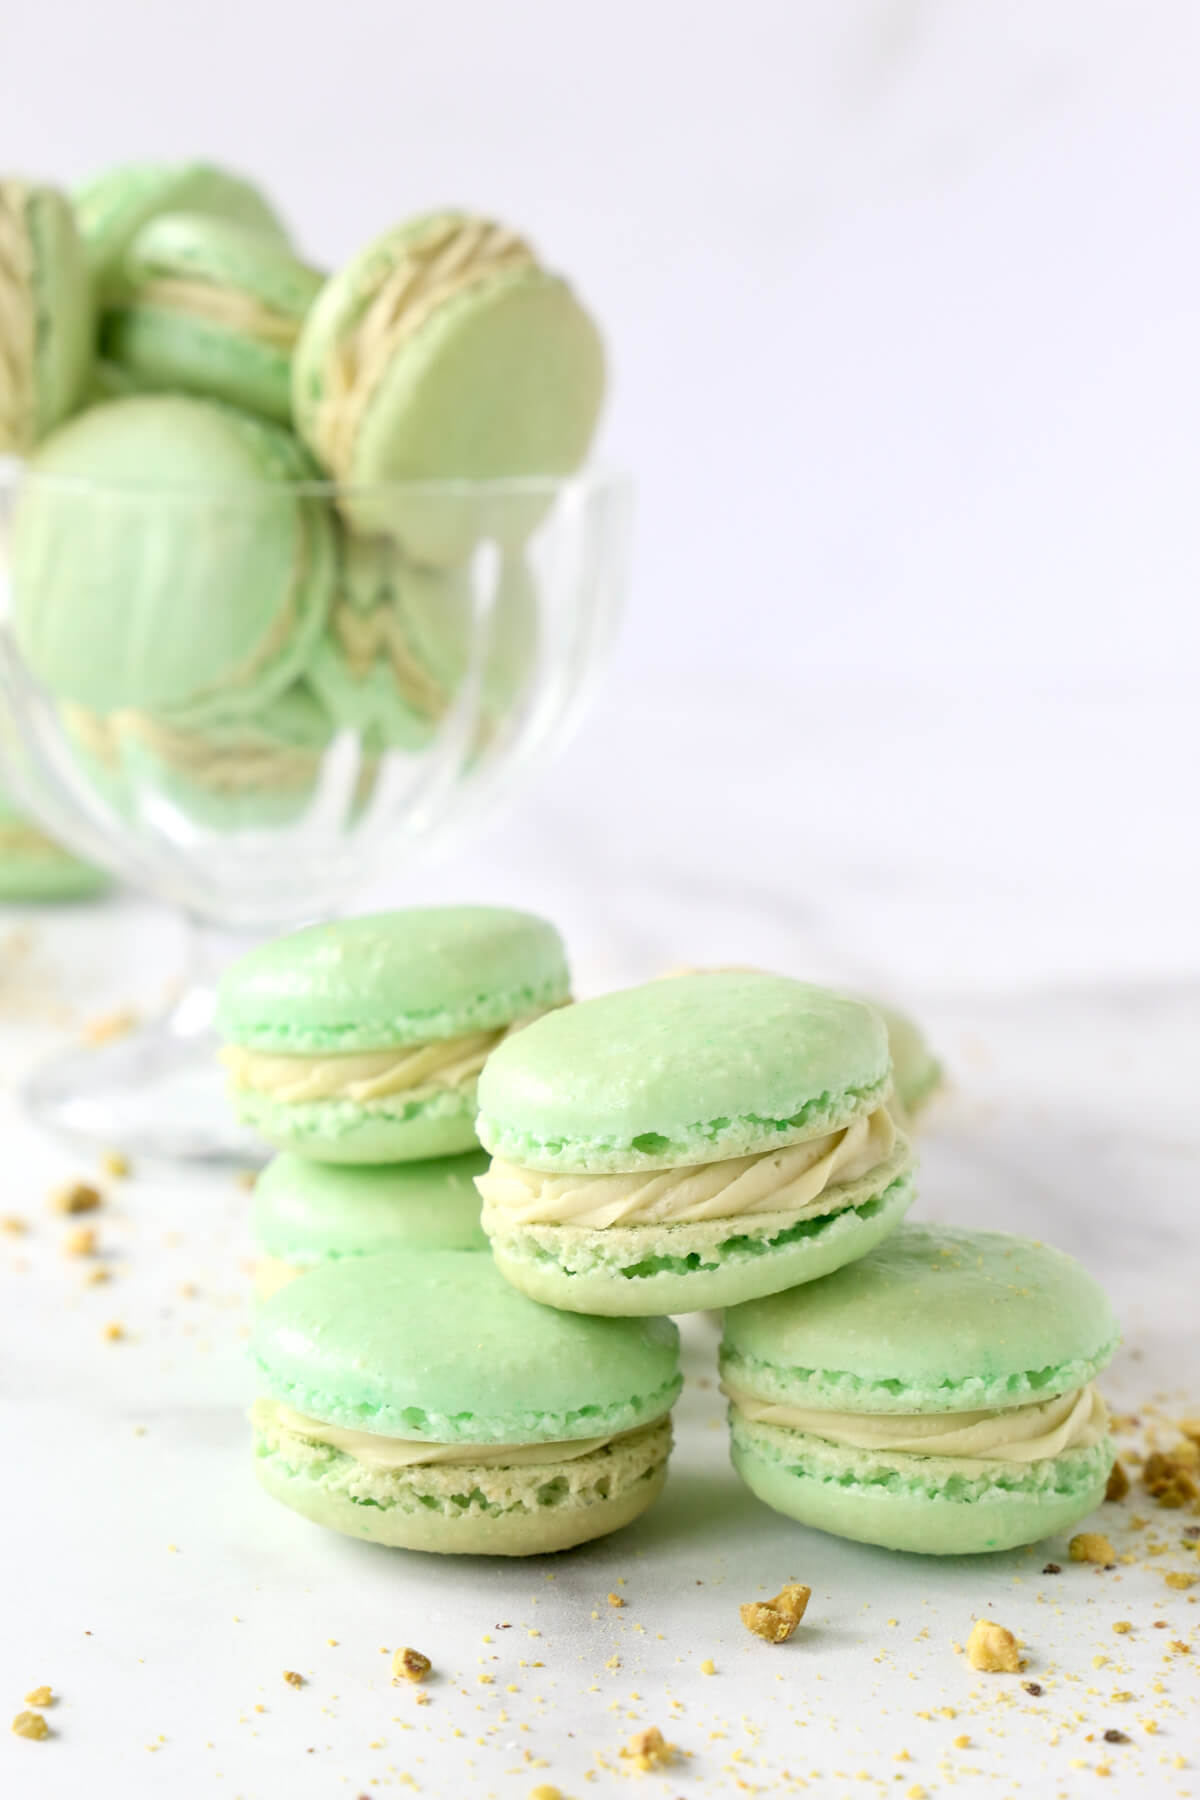 green cookies stacked on top of each other with crushed pistachios sprinkled around them.